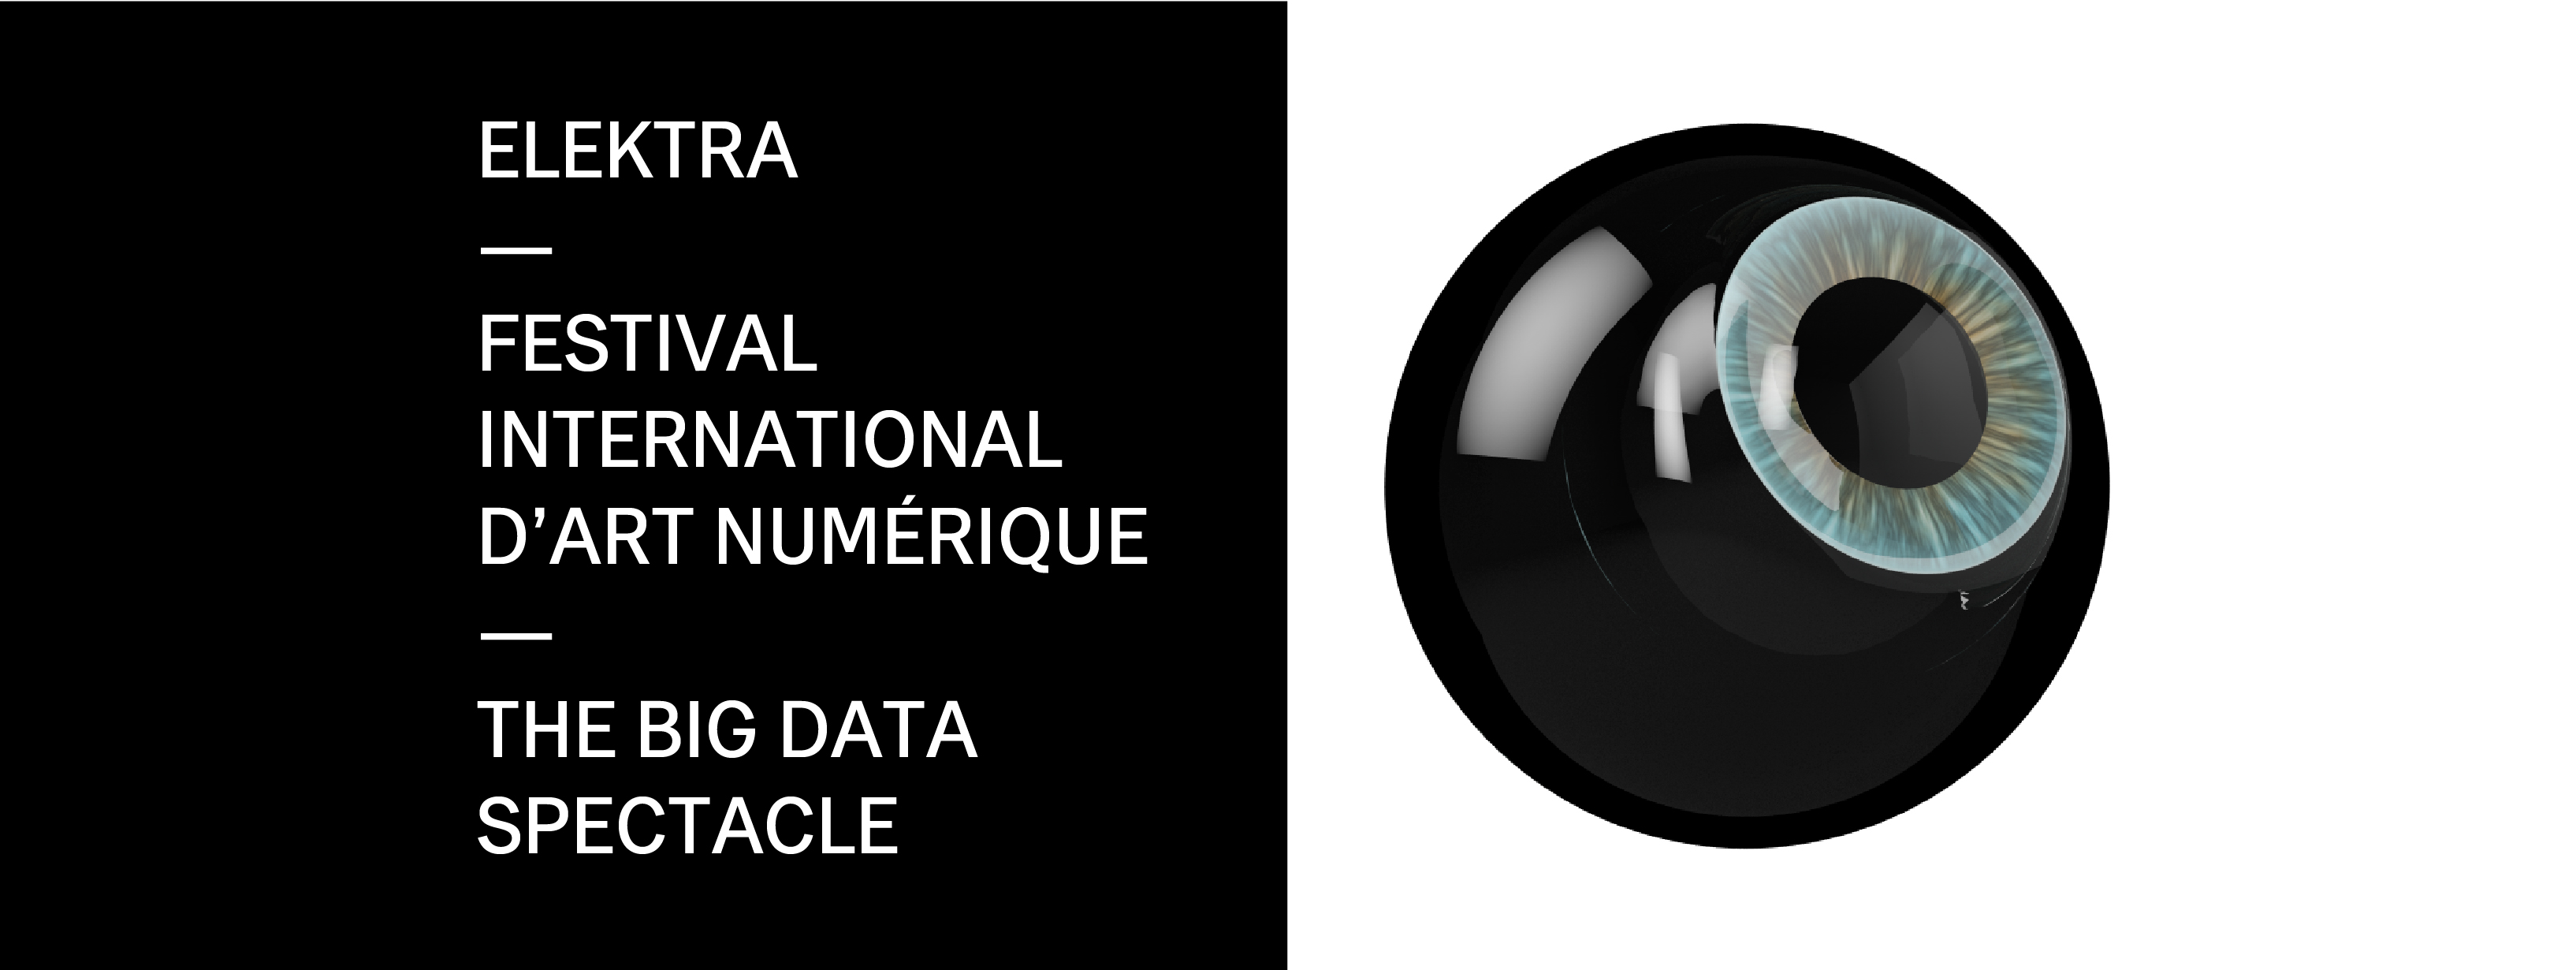 """""""The Big Data Spectacle"""" : Elektra Festival explore Artificial Intelligence for his 18th edition in Montreal from June 28th to 30th 2017"""